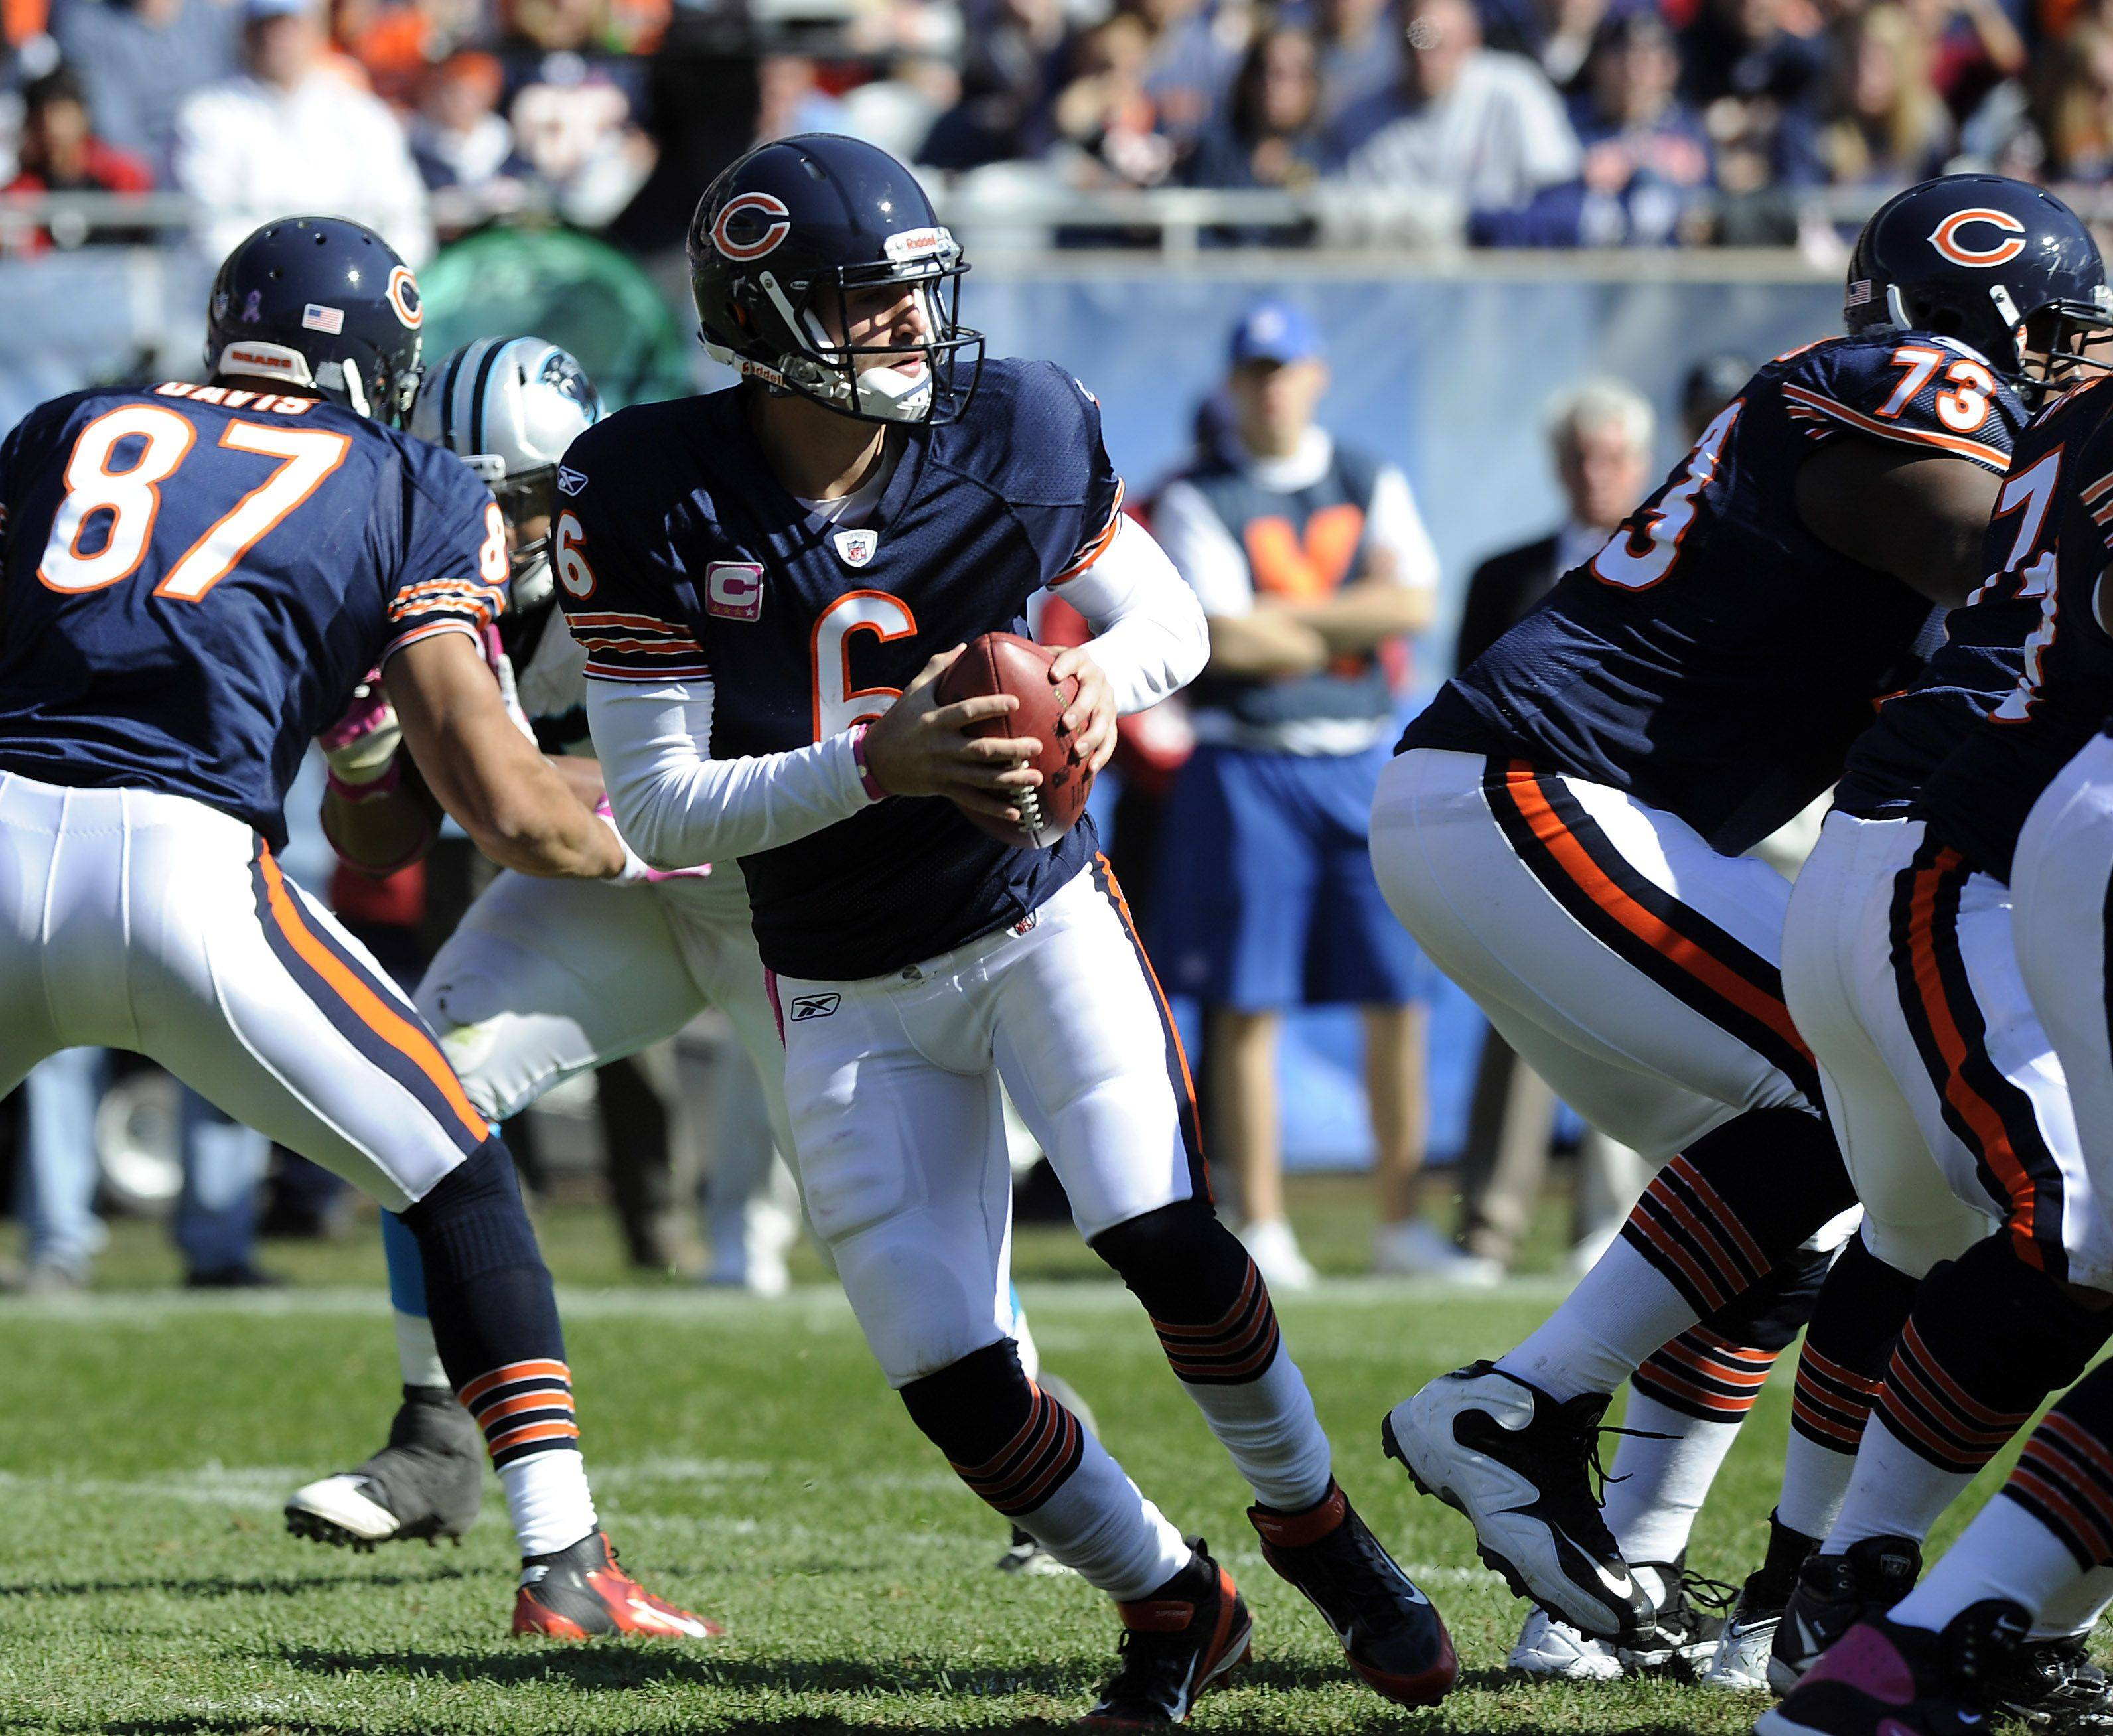 Bears quarterback Jay Cutler falls back in the pocket under pressure and throws his first interception of the game against the Panthers.